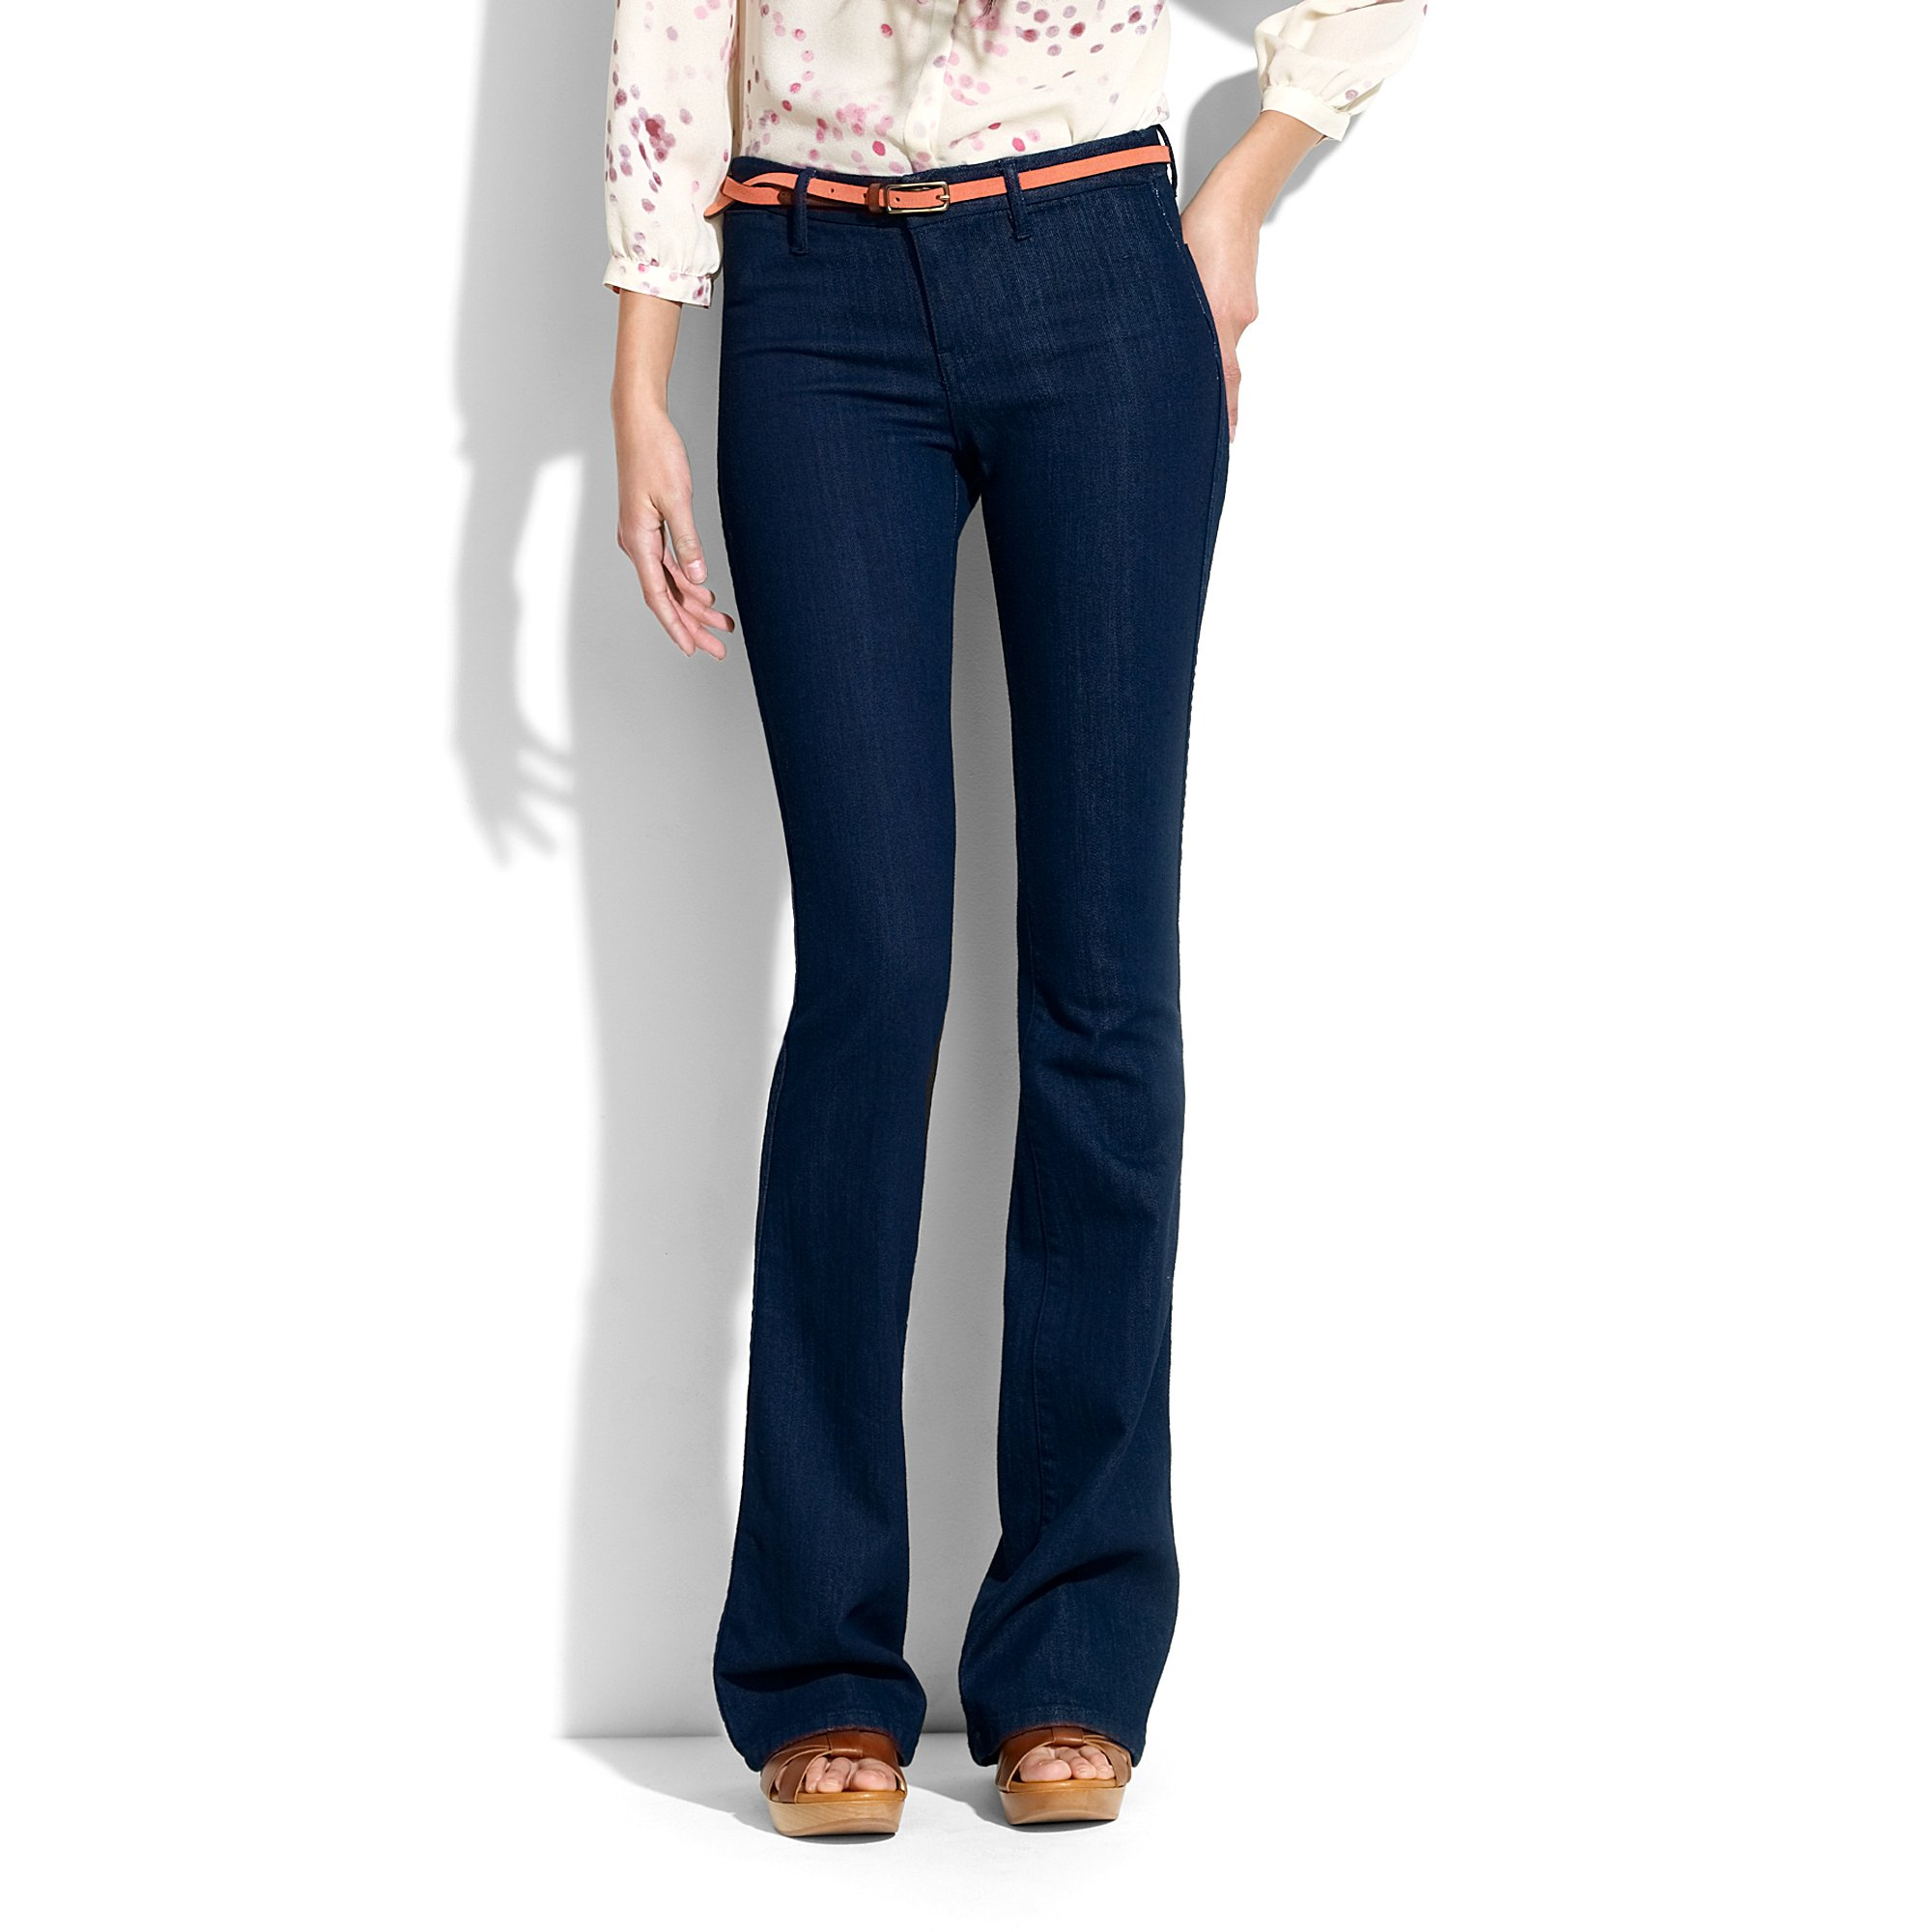 Lyst - Madewell Vintage Rocker Jeans in Eclipse Wash in Blue